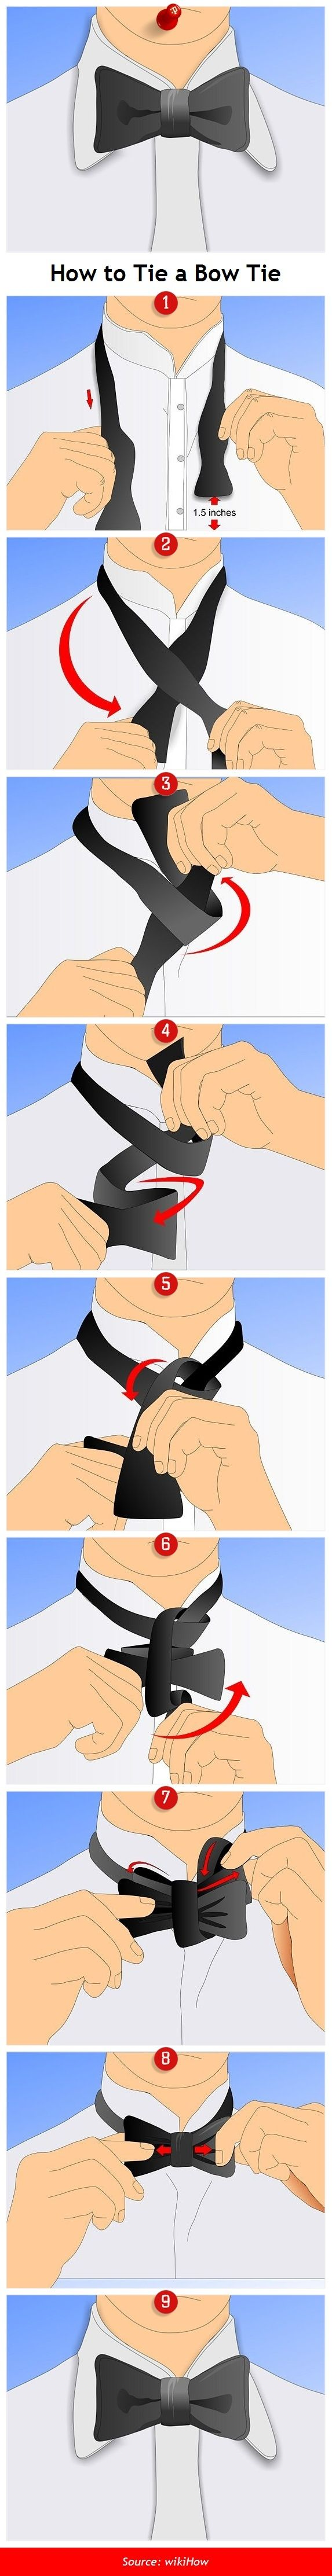 How to Tie a Bow Tie, you are not a Whovian unless you know that!